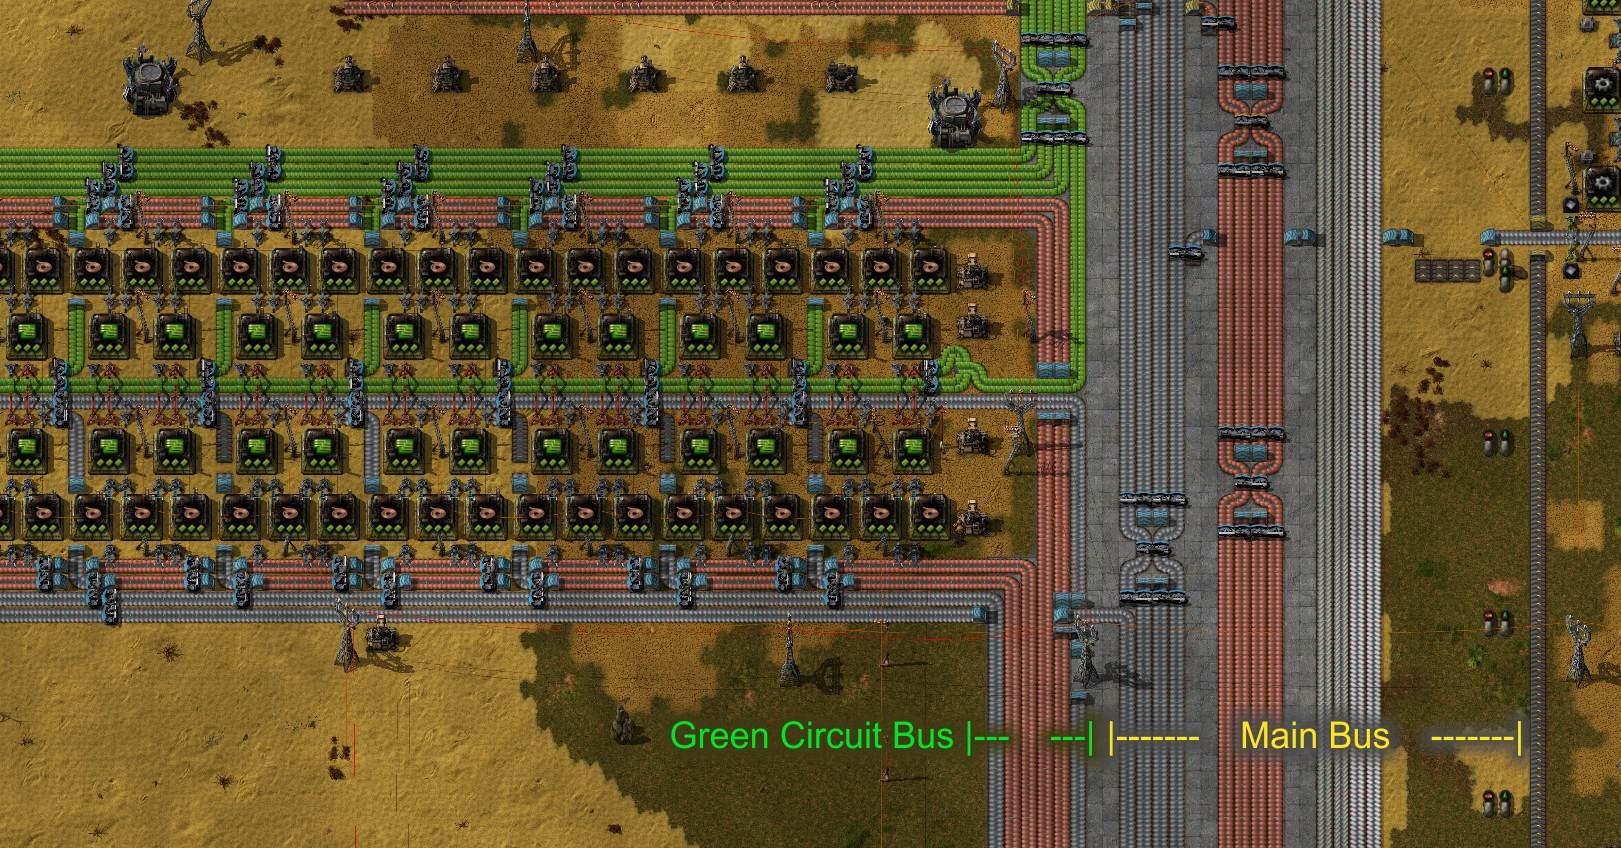 In Particular, I Feed My Green Circuit Assembly With 3 Belts Of Iron Plates  + 4 Belts Of Copper Plates. These Are Separate From The Lines On The Main  Bus.